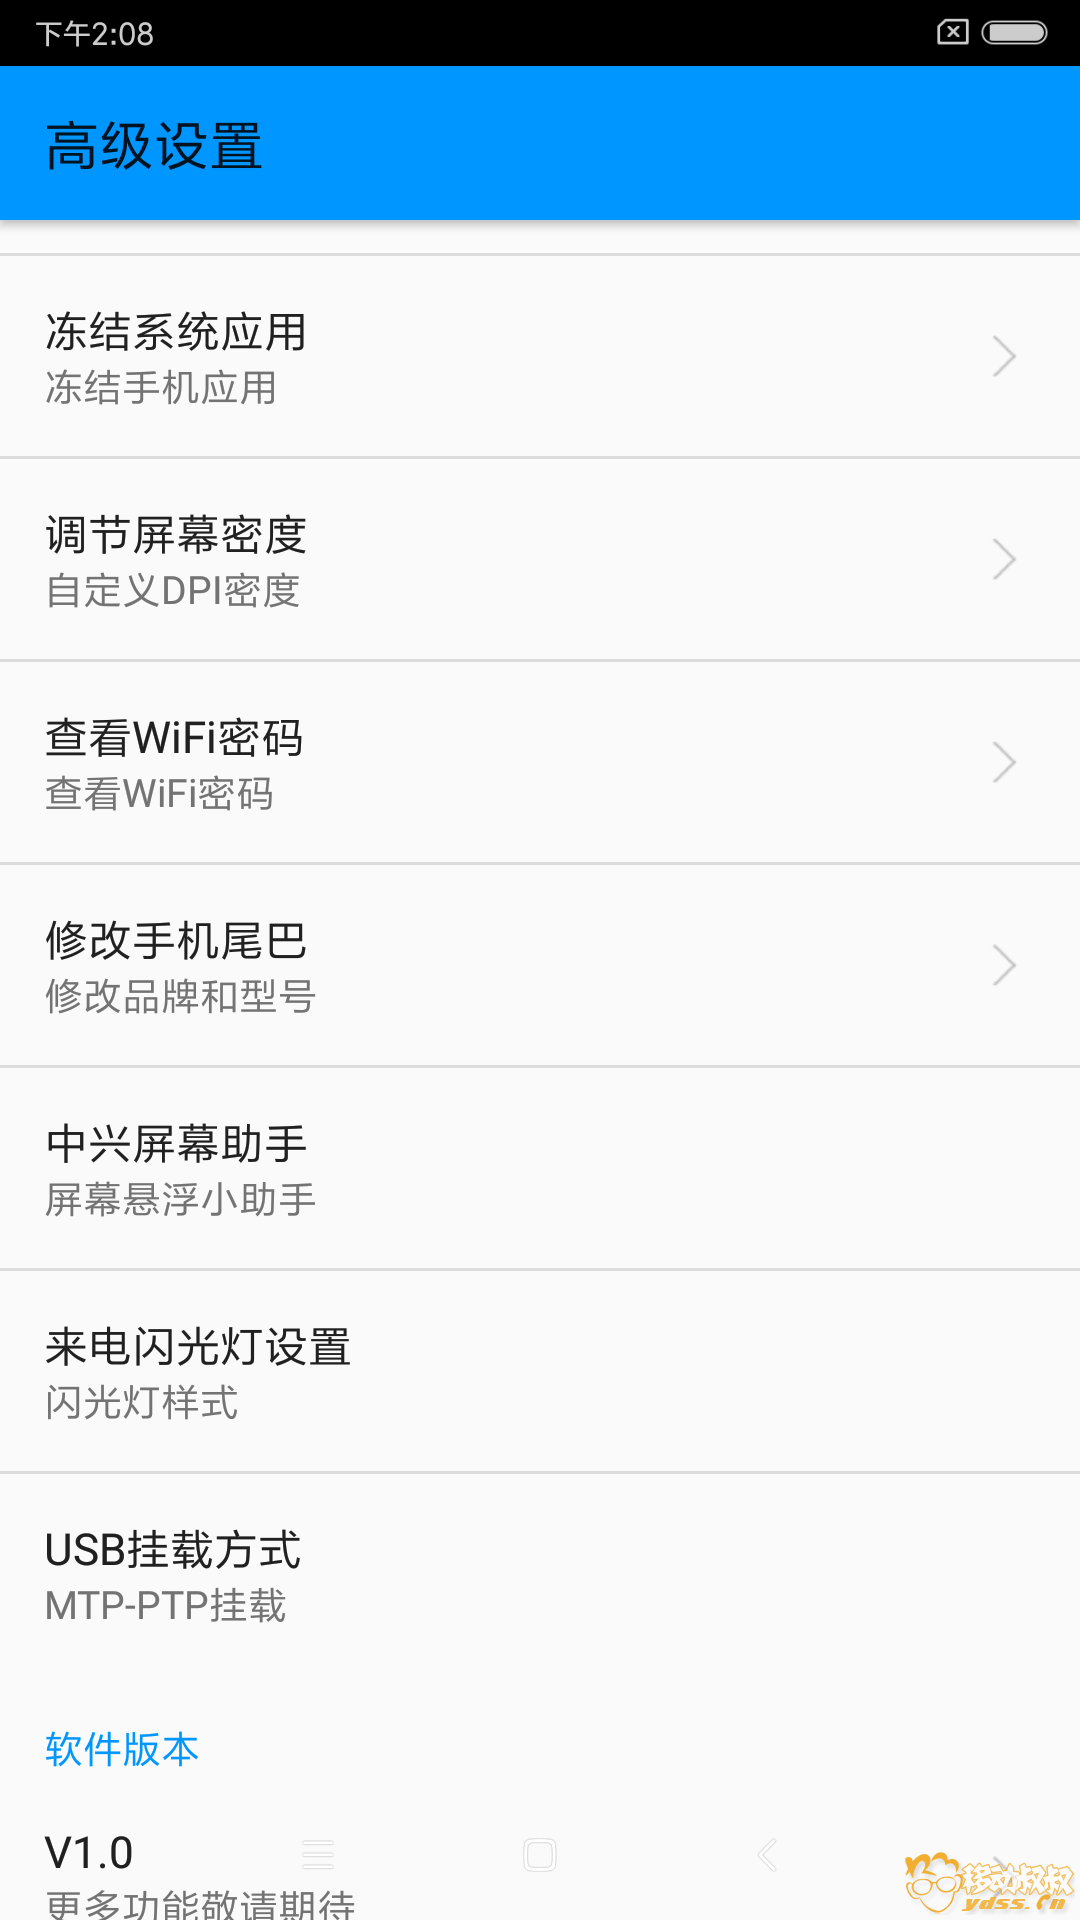 Screenshot_2017-11-07-14-08-36-532_com.zhanhong.tools.png